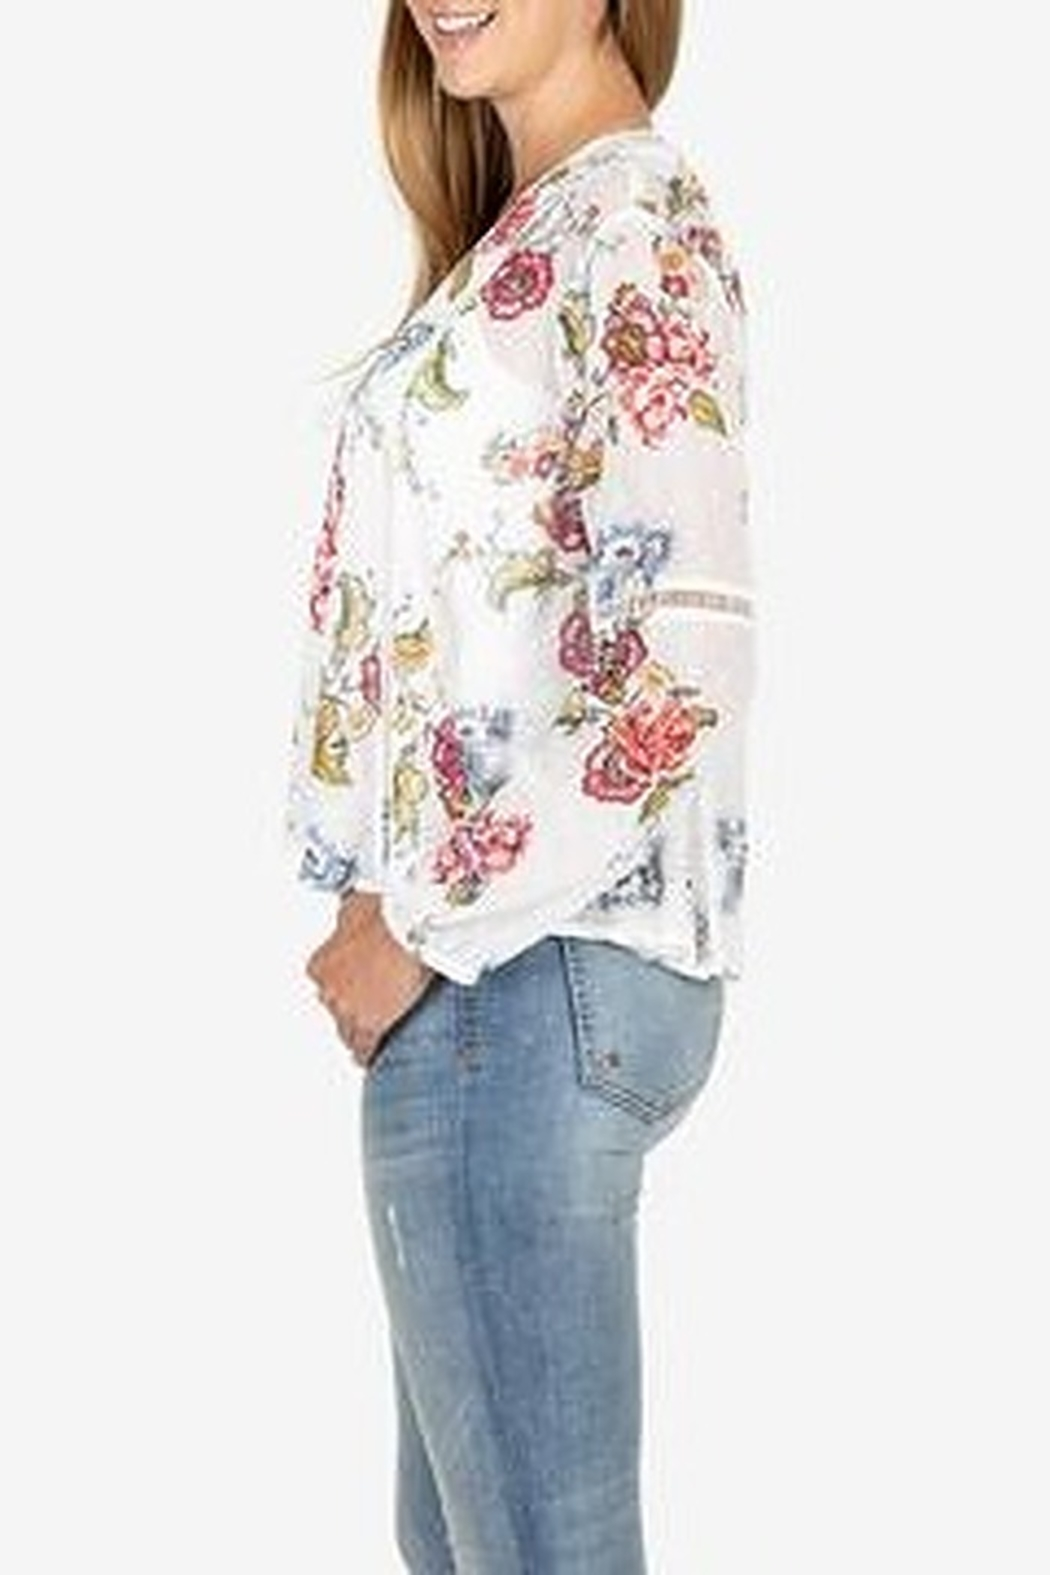 KUT from the Cloth Kut from the Kloth Becca Floral Tassel Tie Blouse - Side Cropped Image